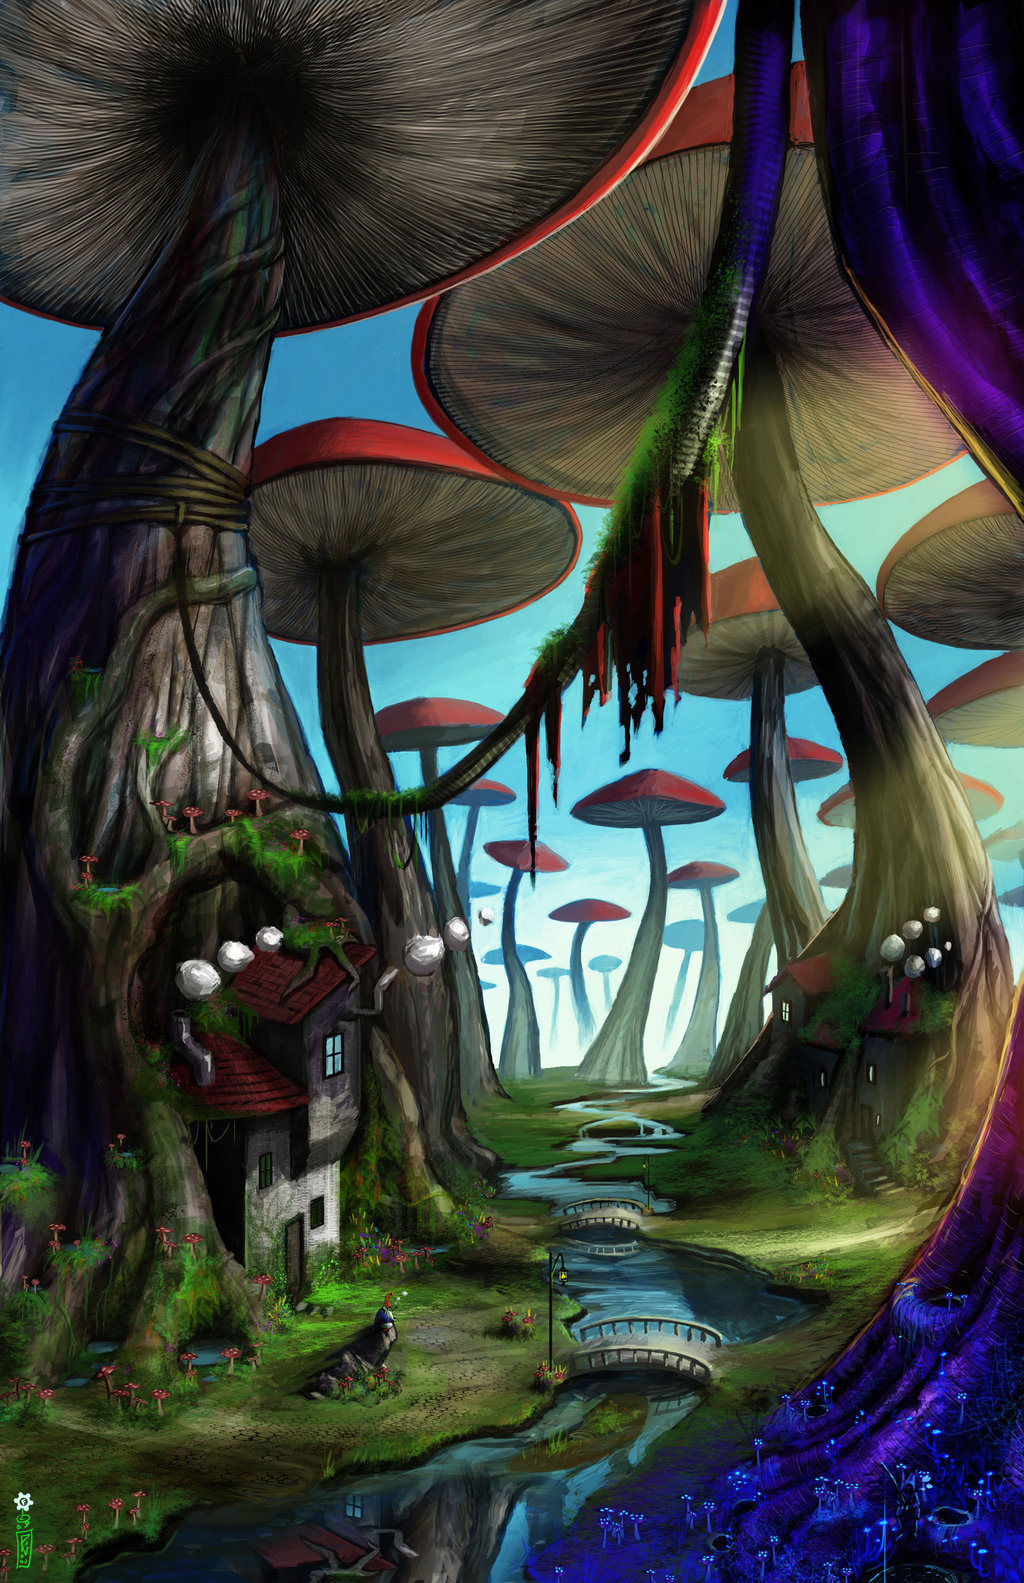 Drawn triipy mushroom forest By dinmoney Pinterest Mushrooms forest